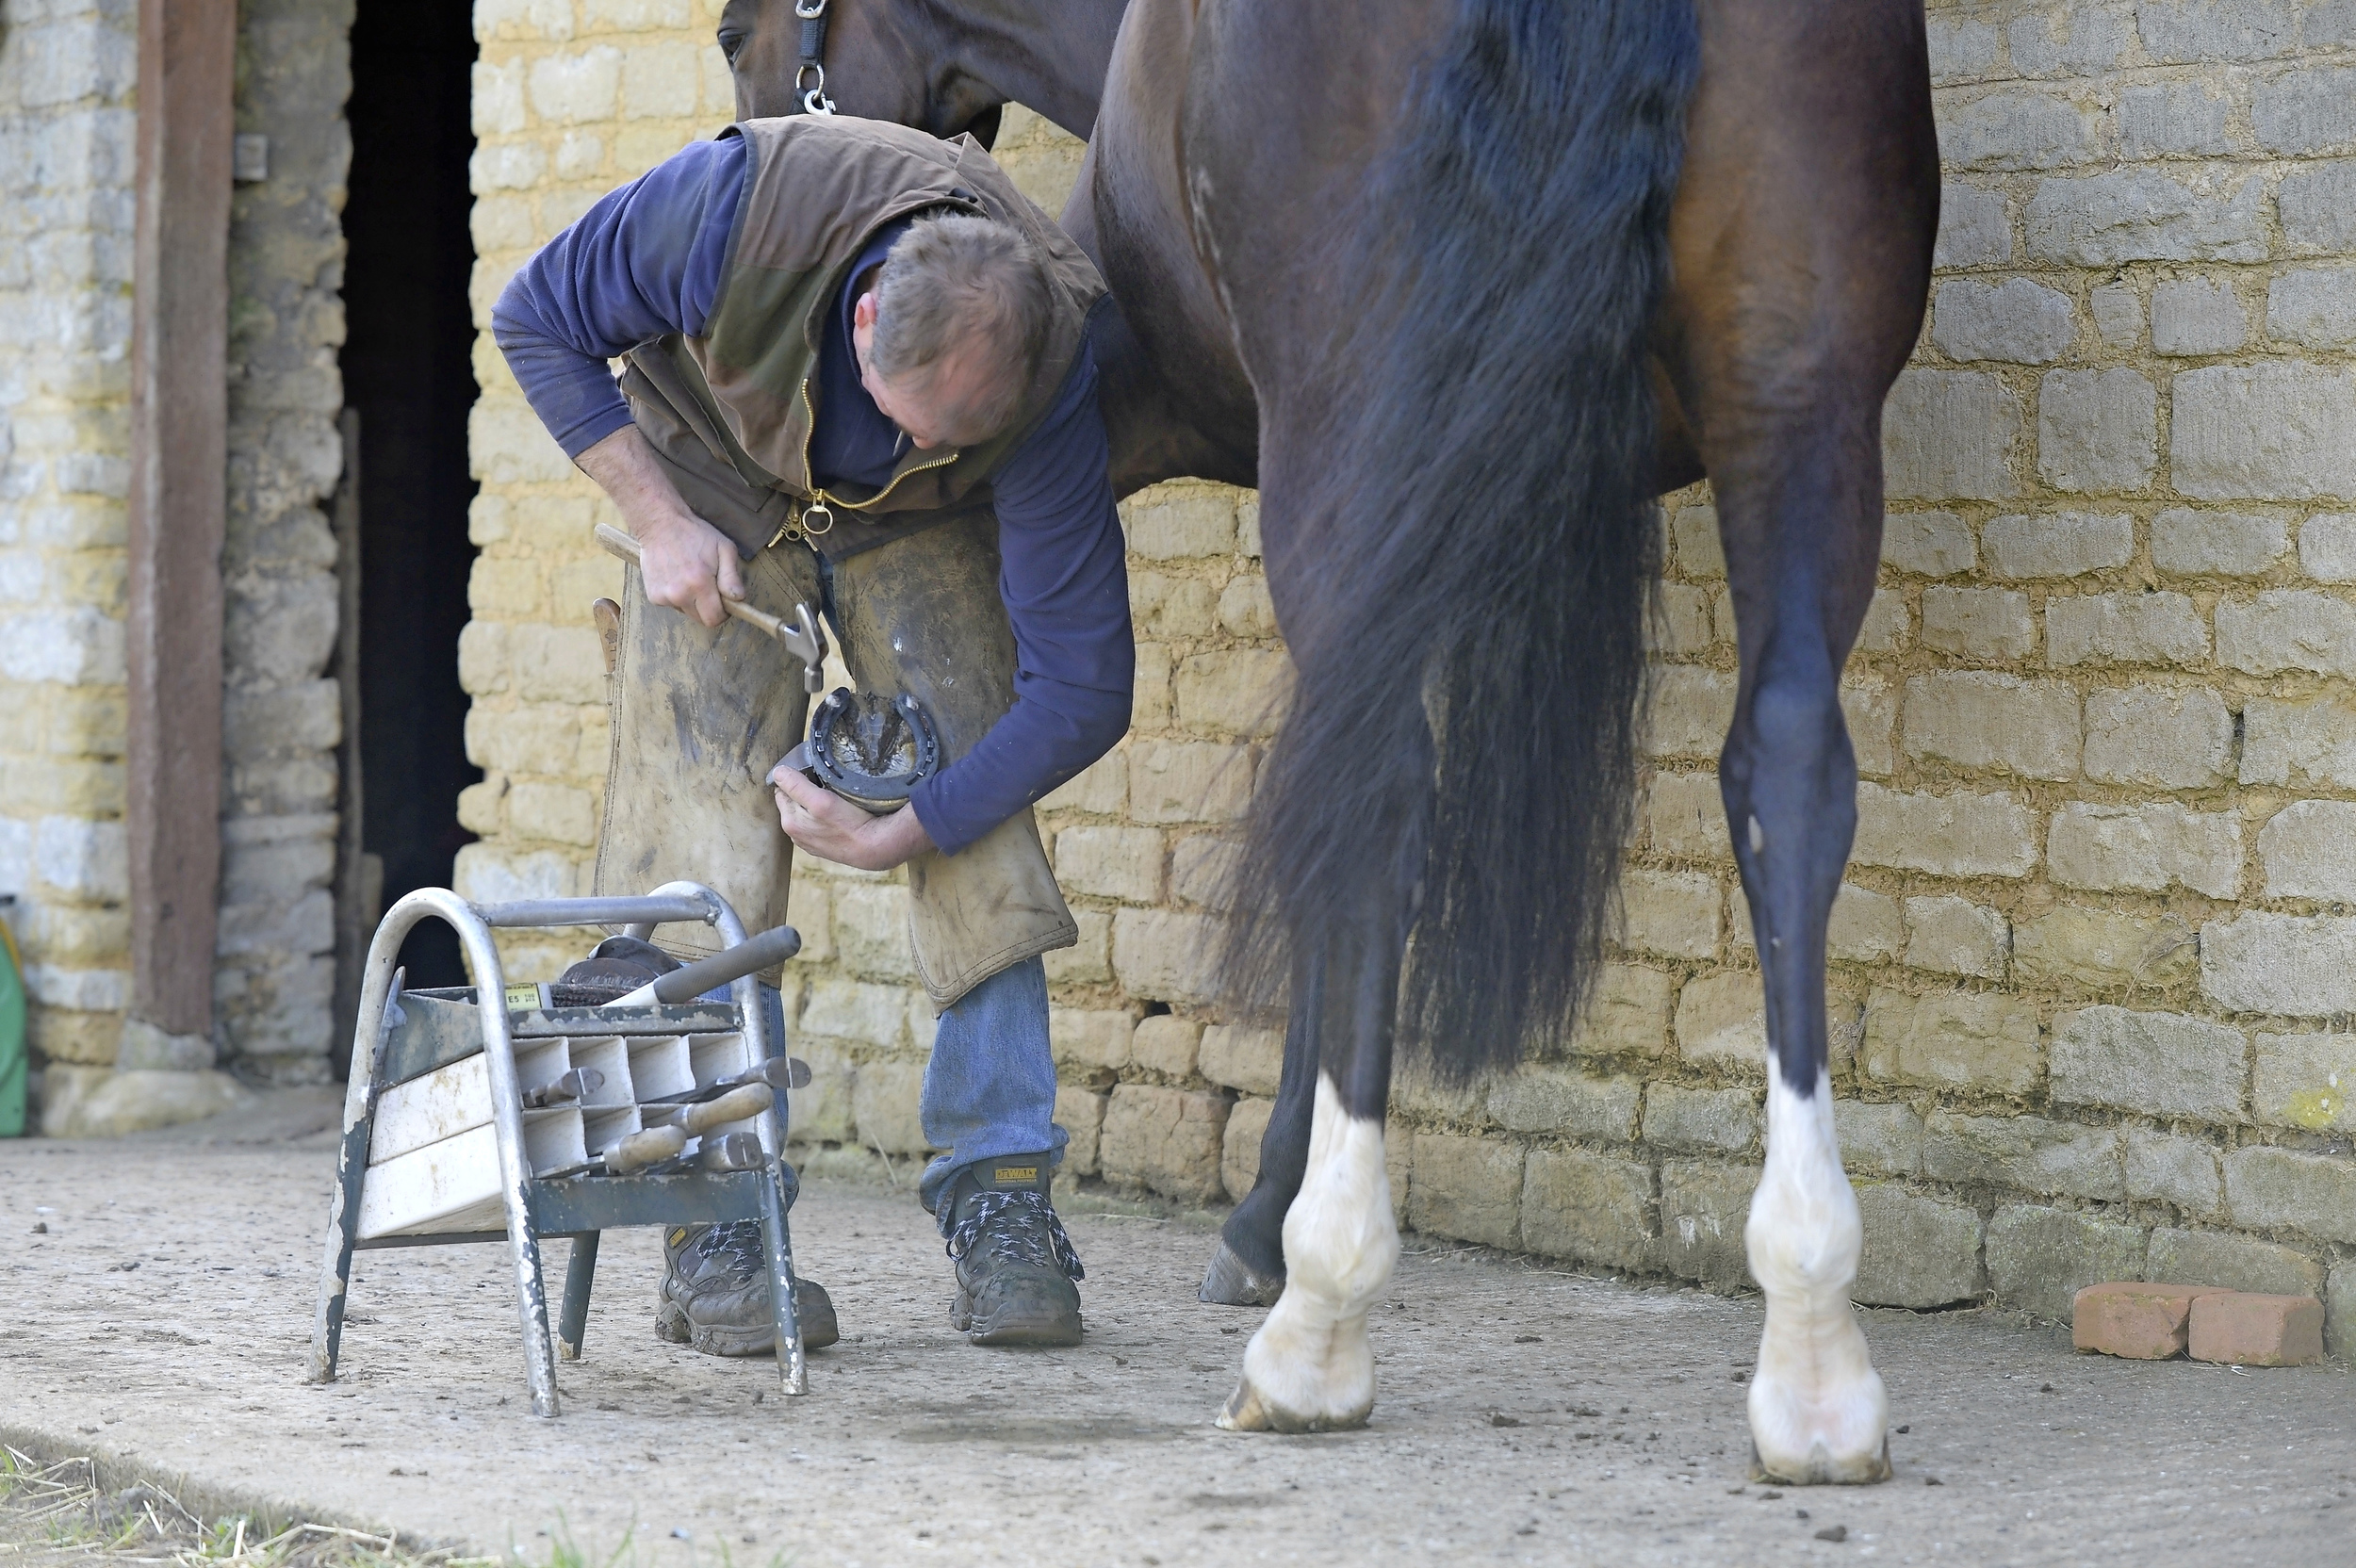 Regular visits from a qualified farrier are vital in order to maintain the health and condition of your horse's hooves